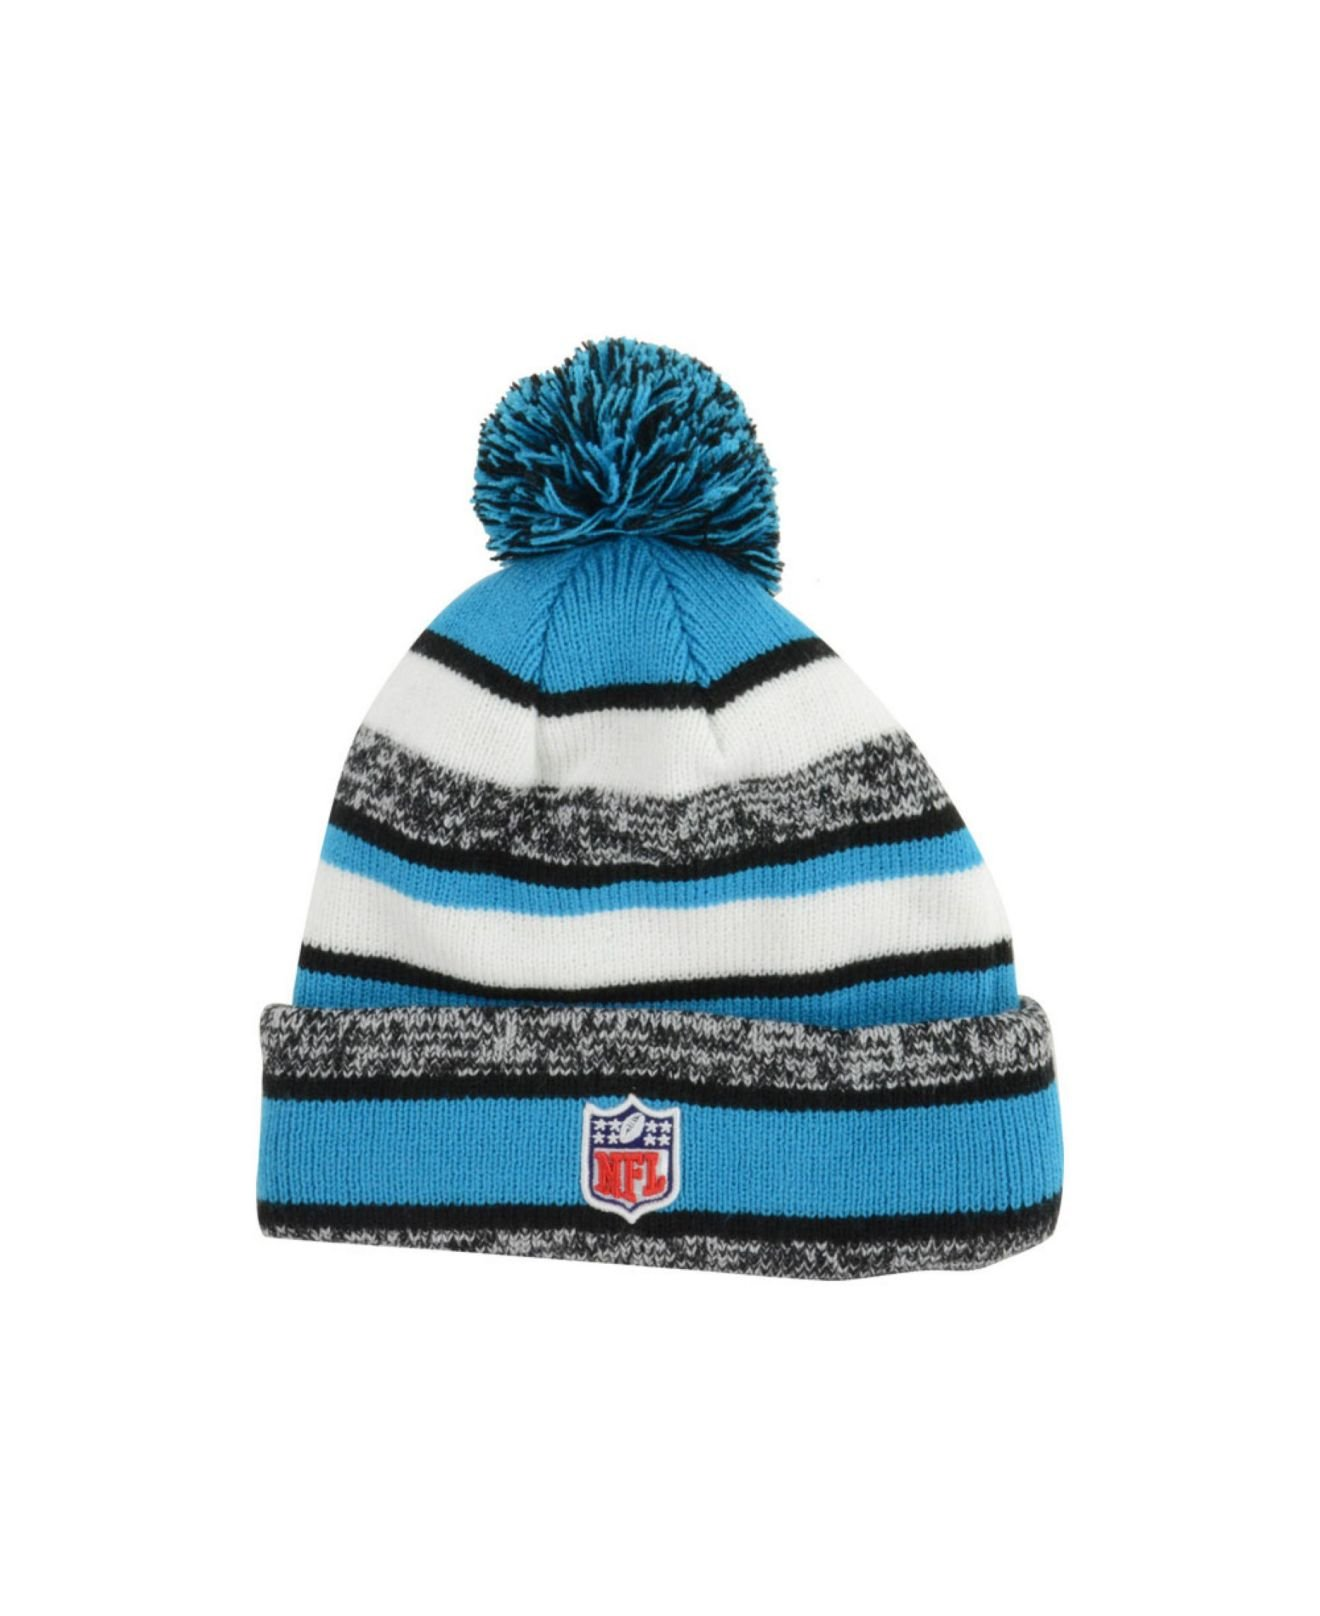 Lyst - KTZ Carolina Panthers Sport Knit Hat in Blue for Men 19a250e69